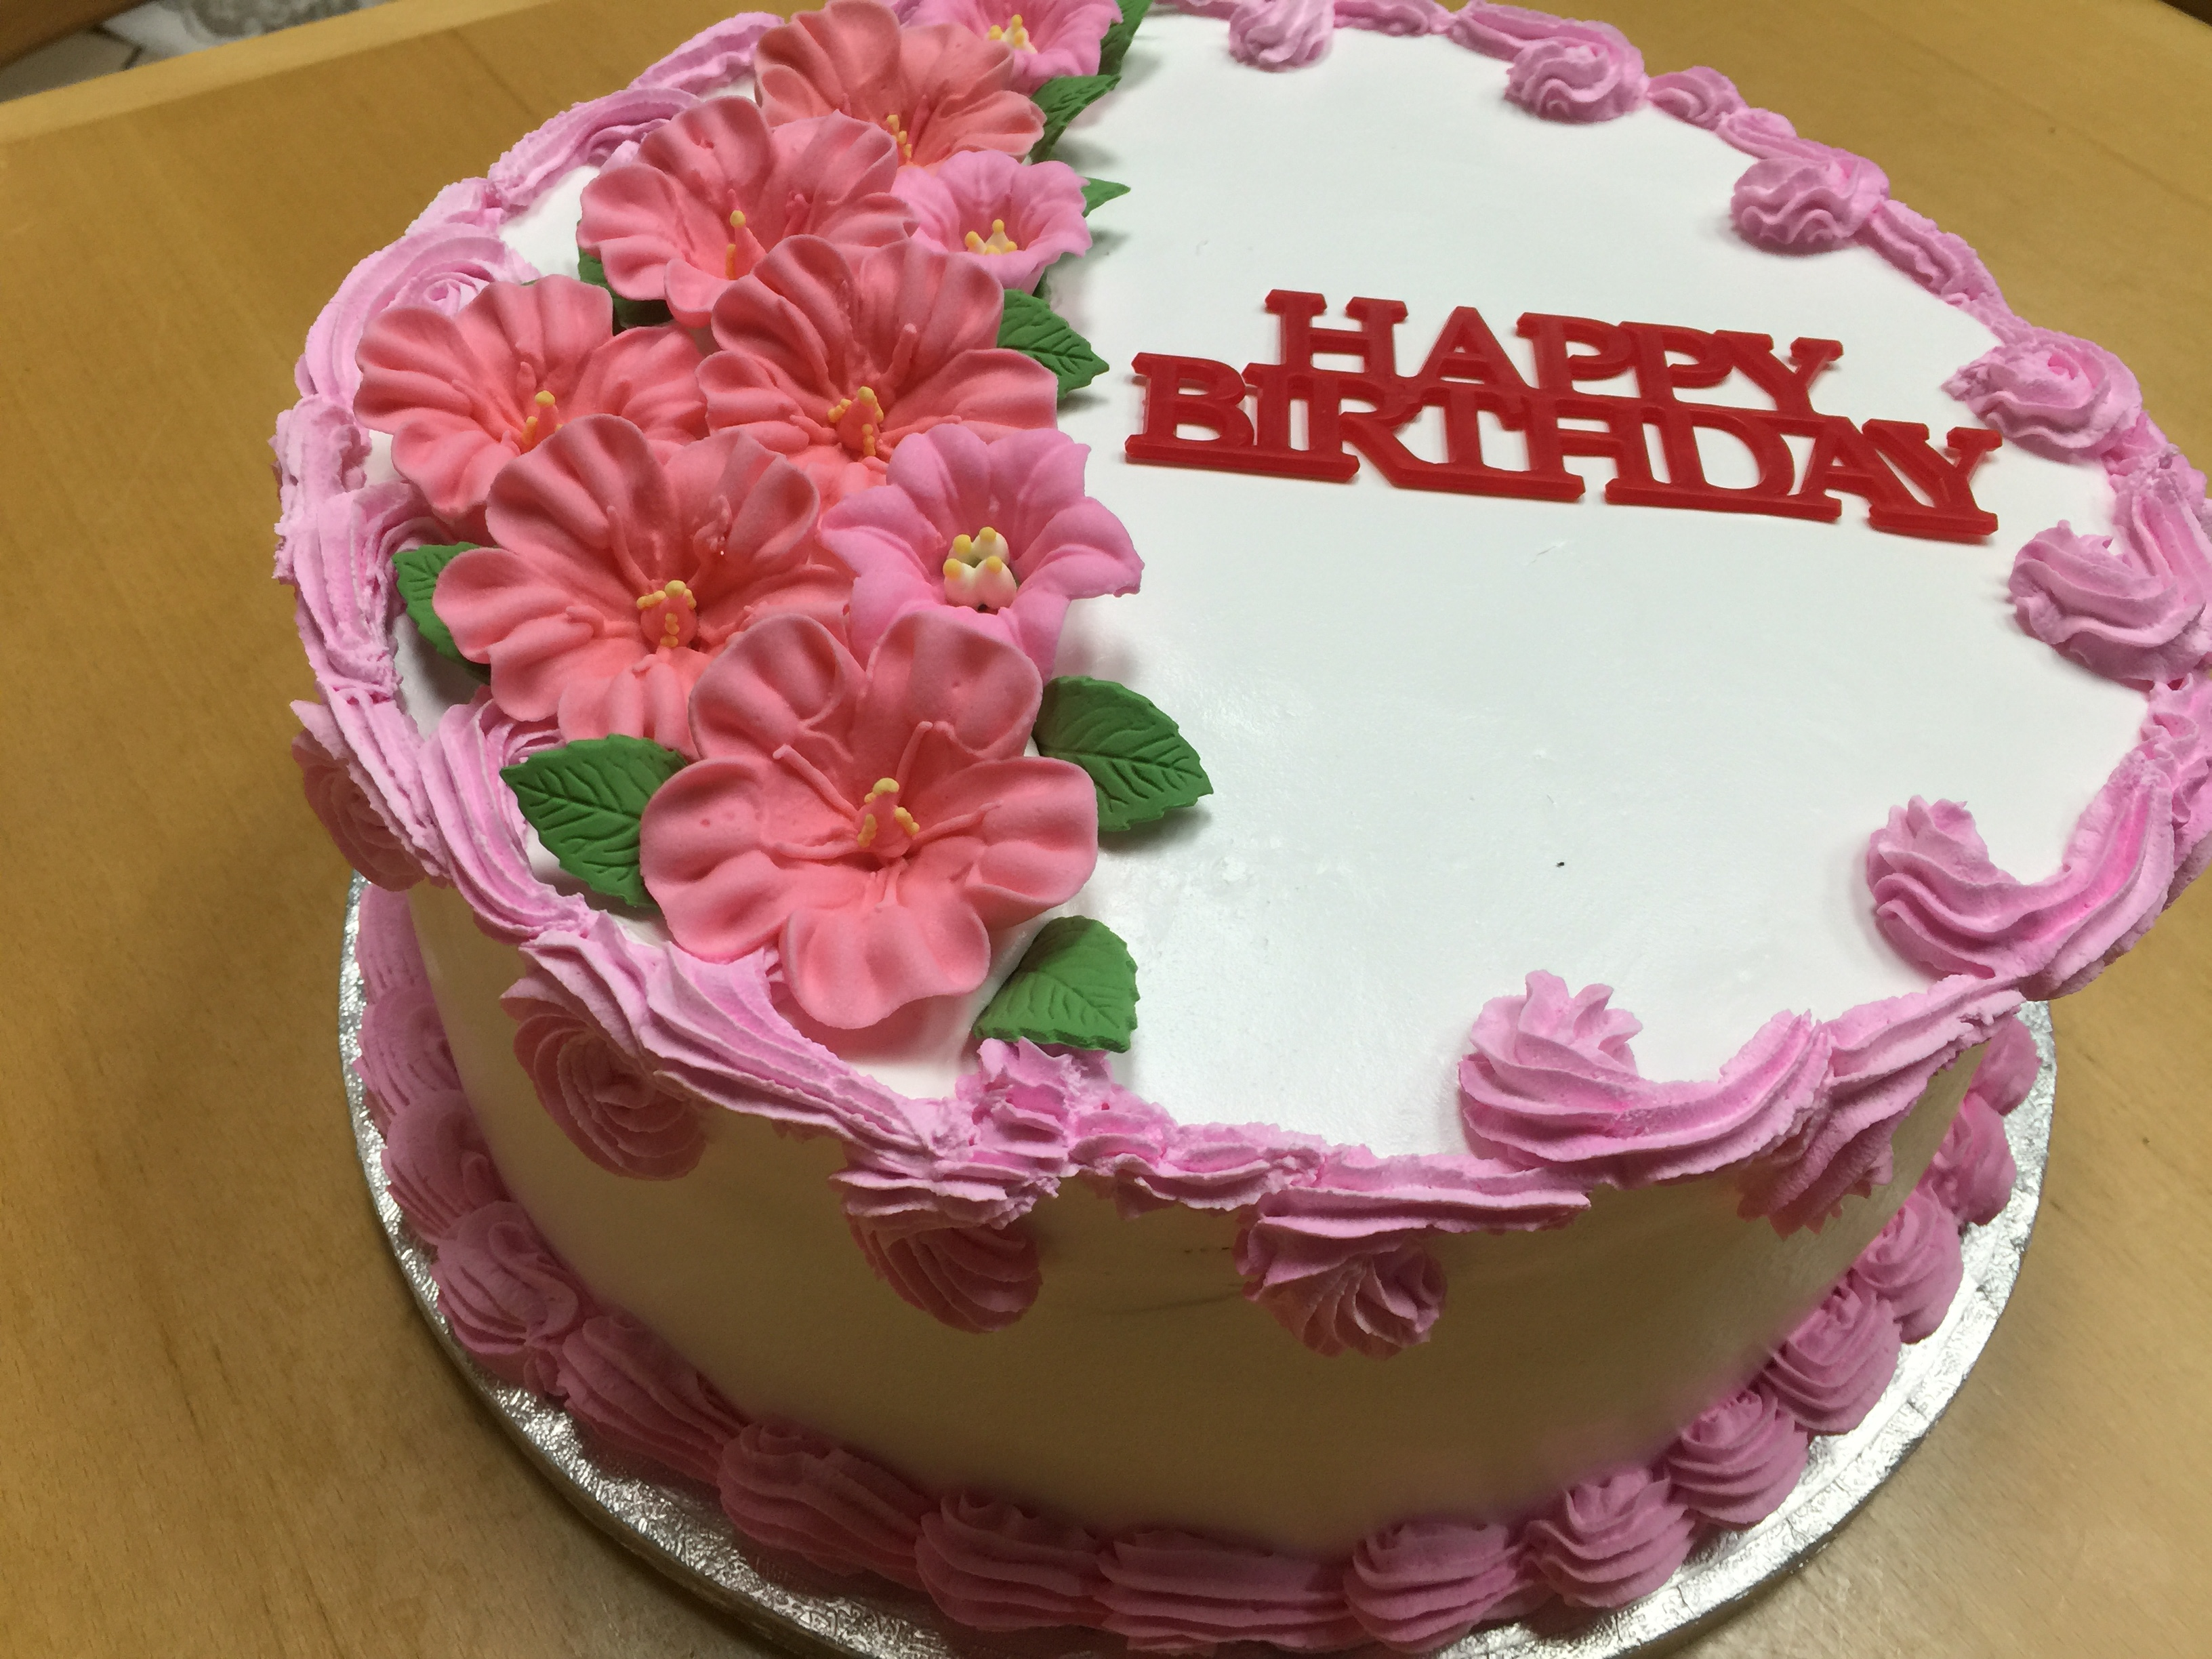 Swell Pink Roses Birthday Cake Wild Berries Bakery And Cafe Funny Birthday Cards Online Alyptdamsfinfo